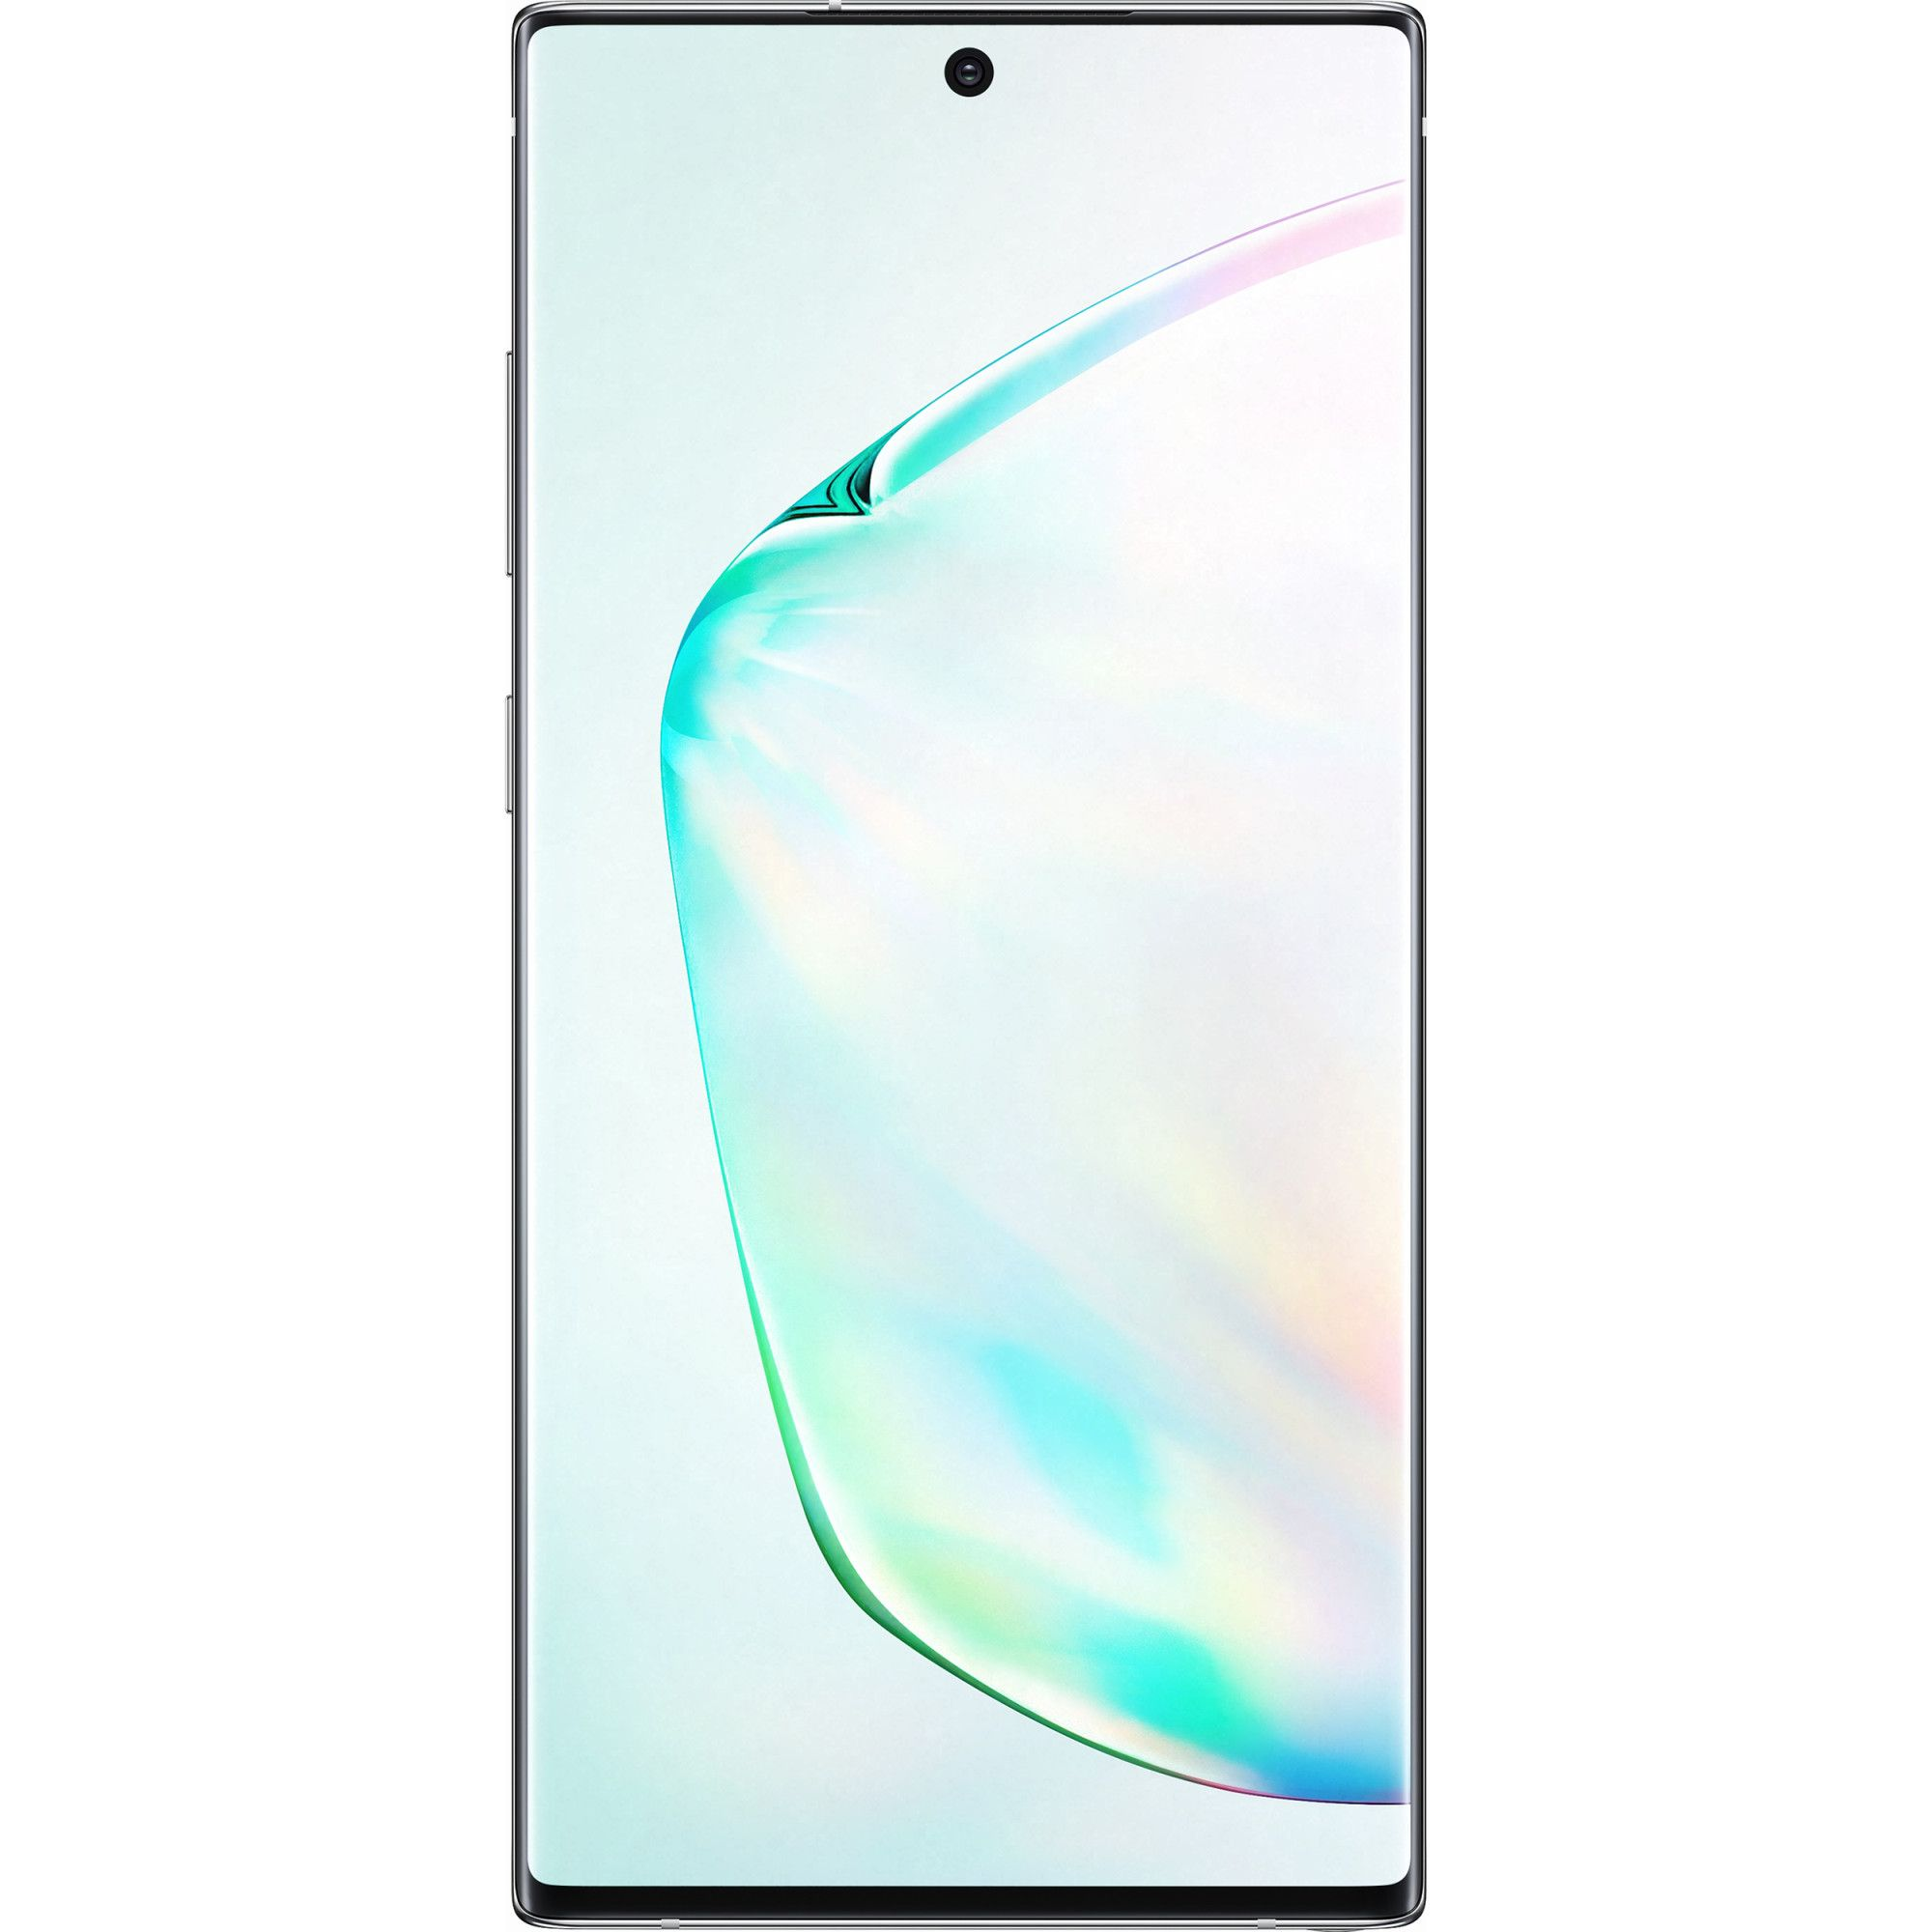 Telefon mobil Samsung Galaxy Note 10 Plus, N976, Single SIM, 256GB, 12GB RAM, 5G, Aura Glow